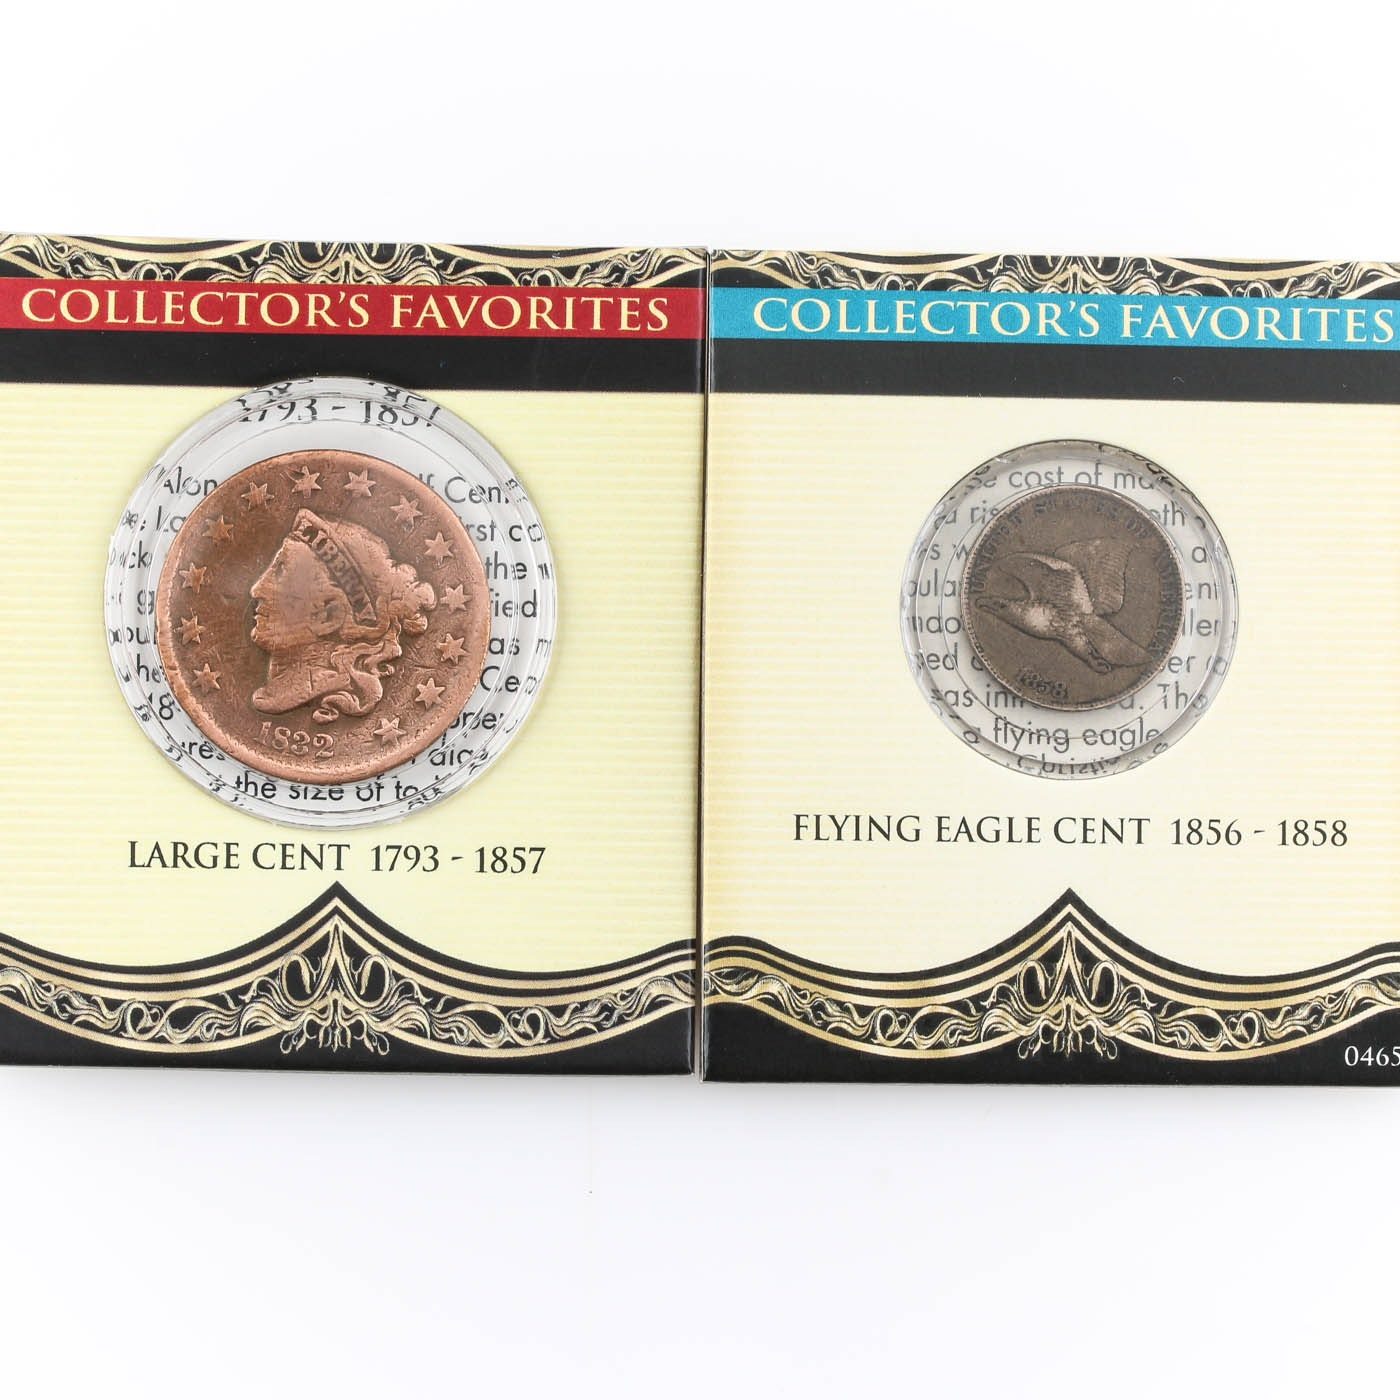 Two U.S. Cents including an 1832 Large cent and an 1858 Flying Eagle